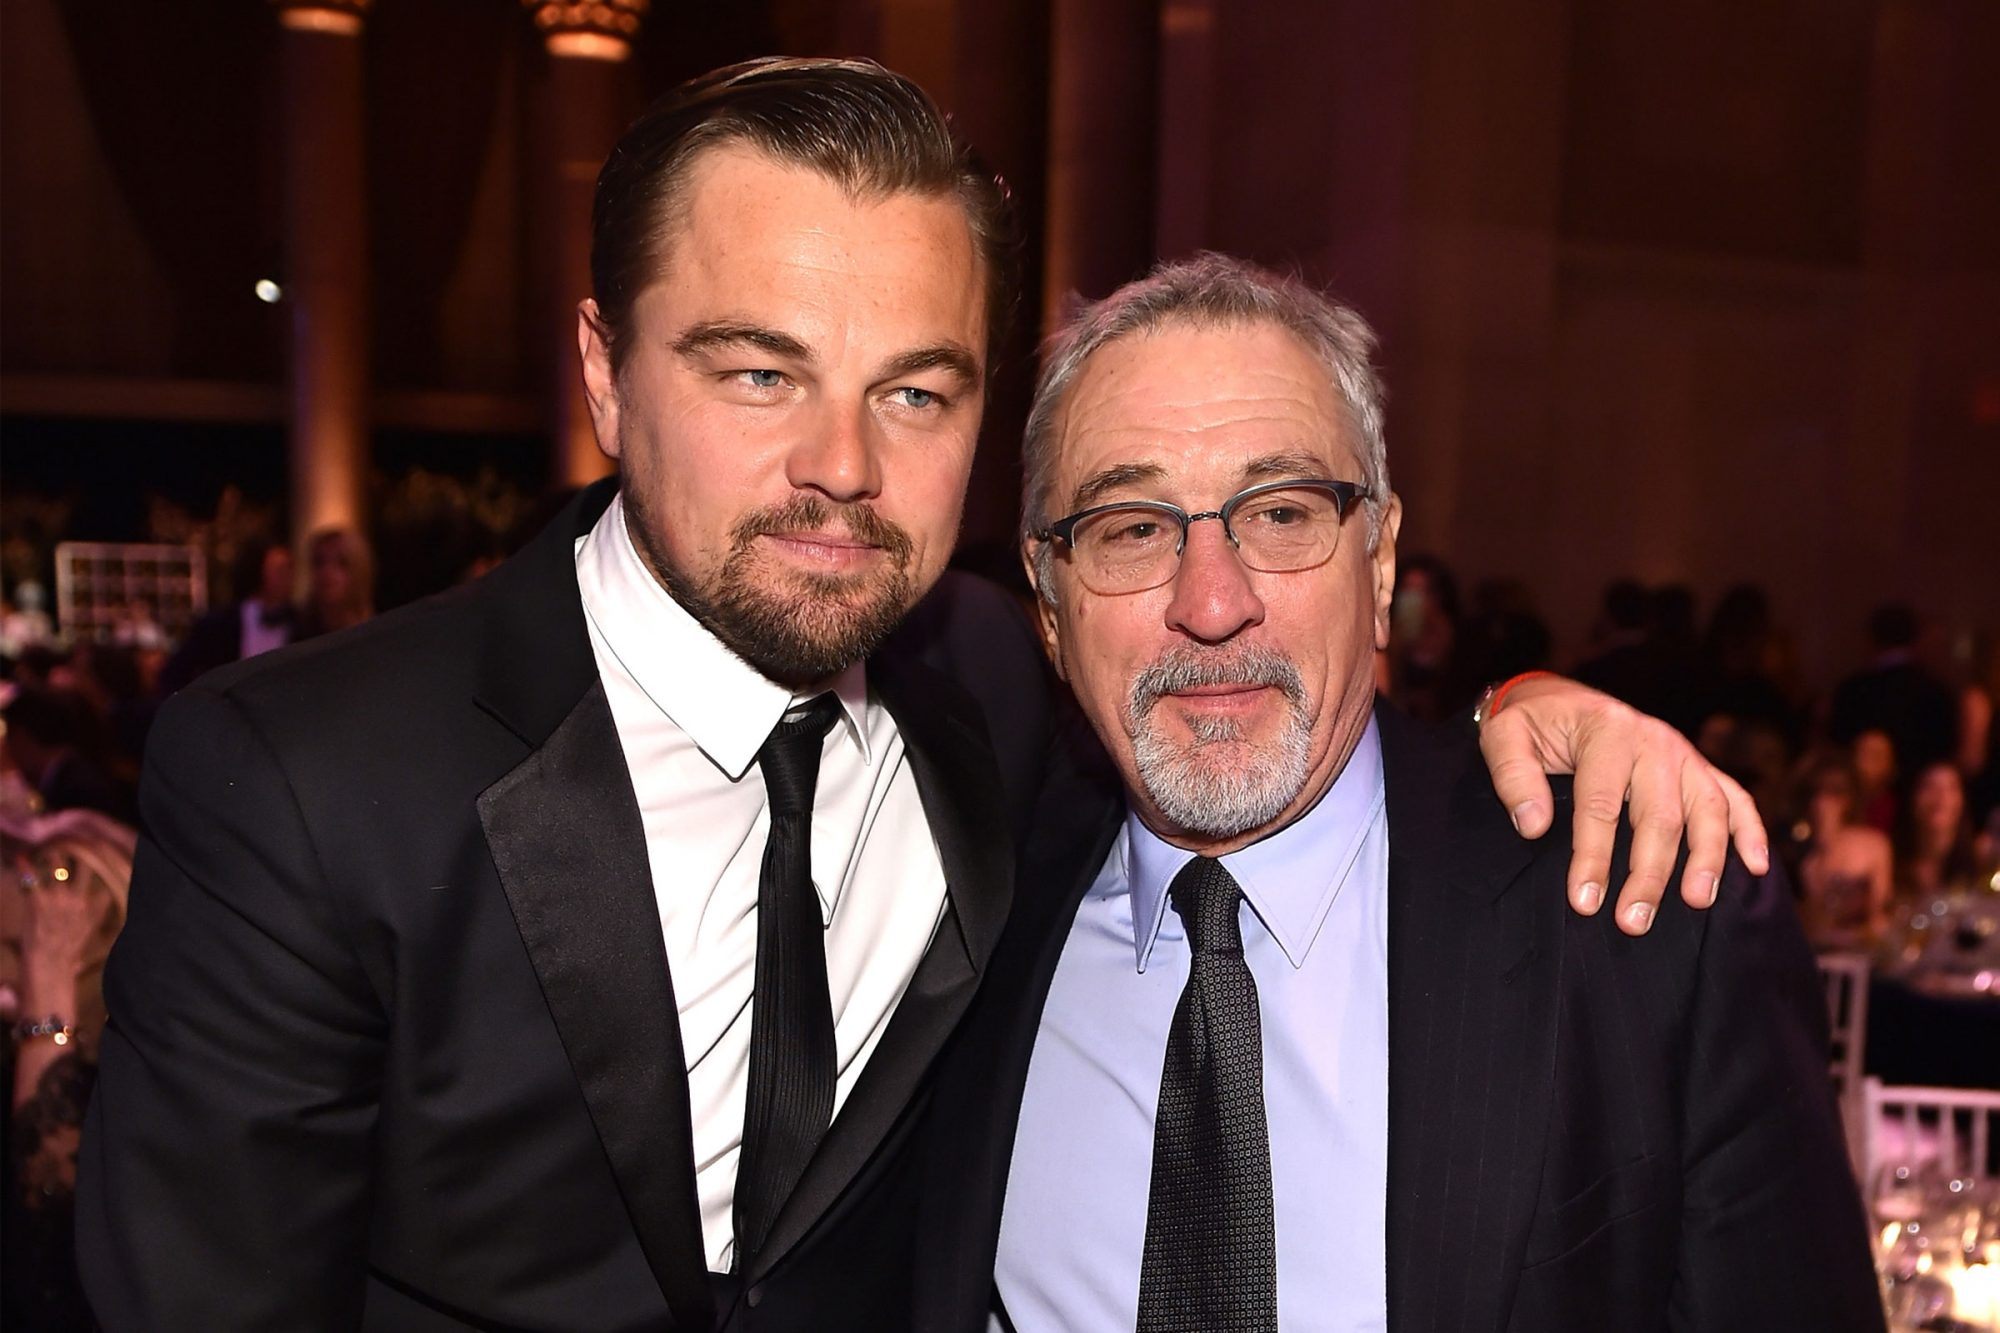 Leonardo DiCaprio and Robert De Niro